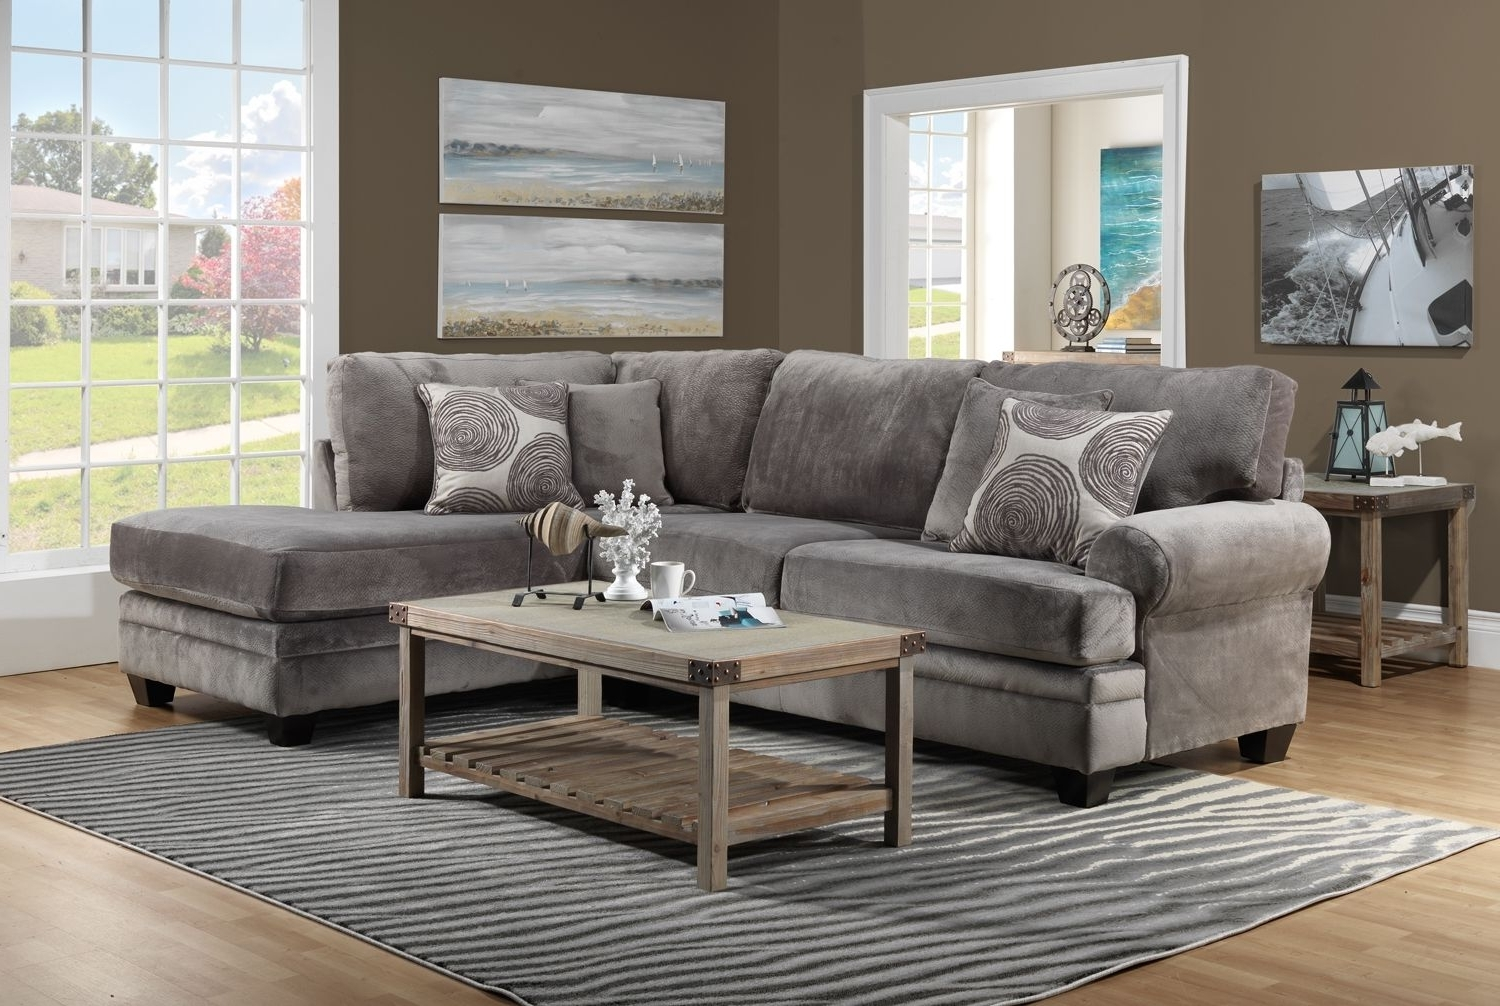 Fashionable Living Room Furniture The Lana Collection Lana 2 Pc (View 8 of 20)